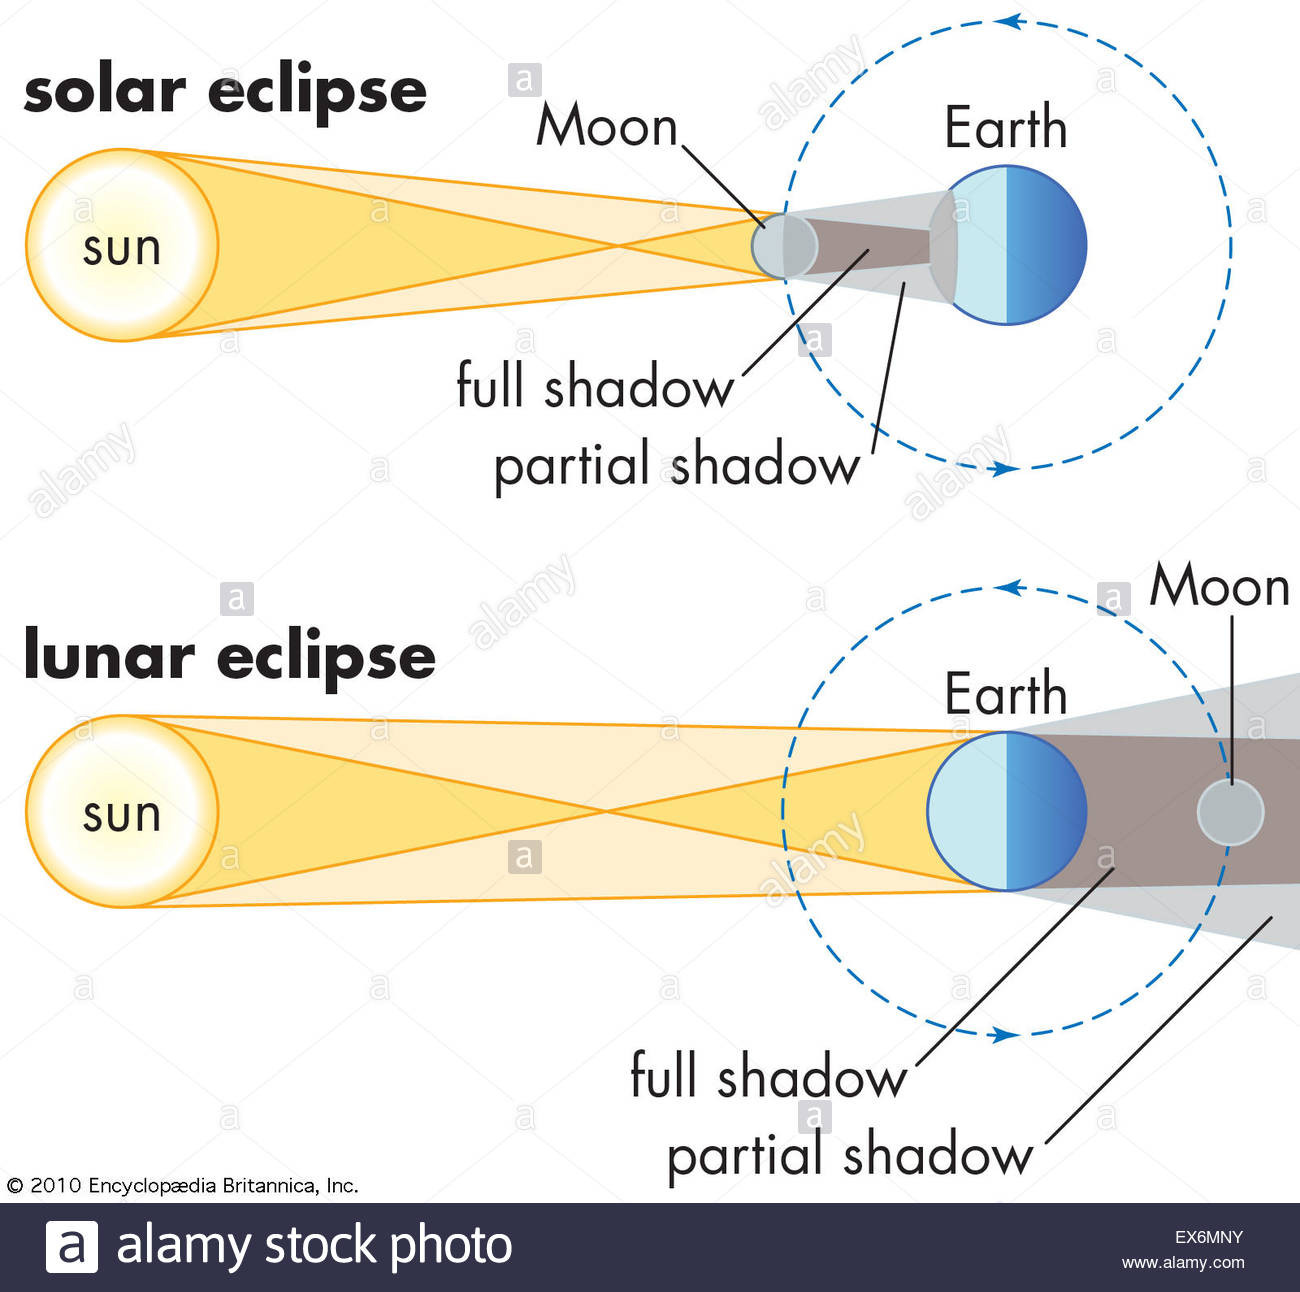 Solar Eclipse Worksheets Middle School Cv 8205] Eclipse Diagram Wiring Diagram